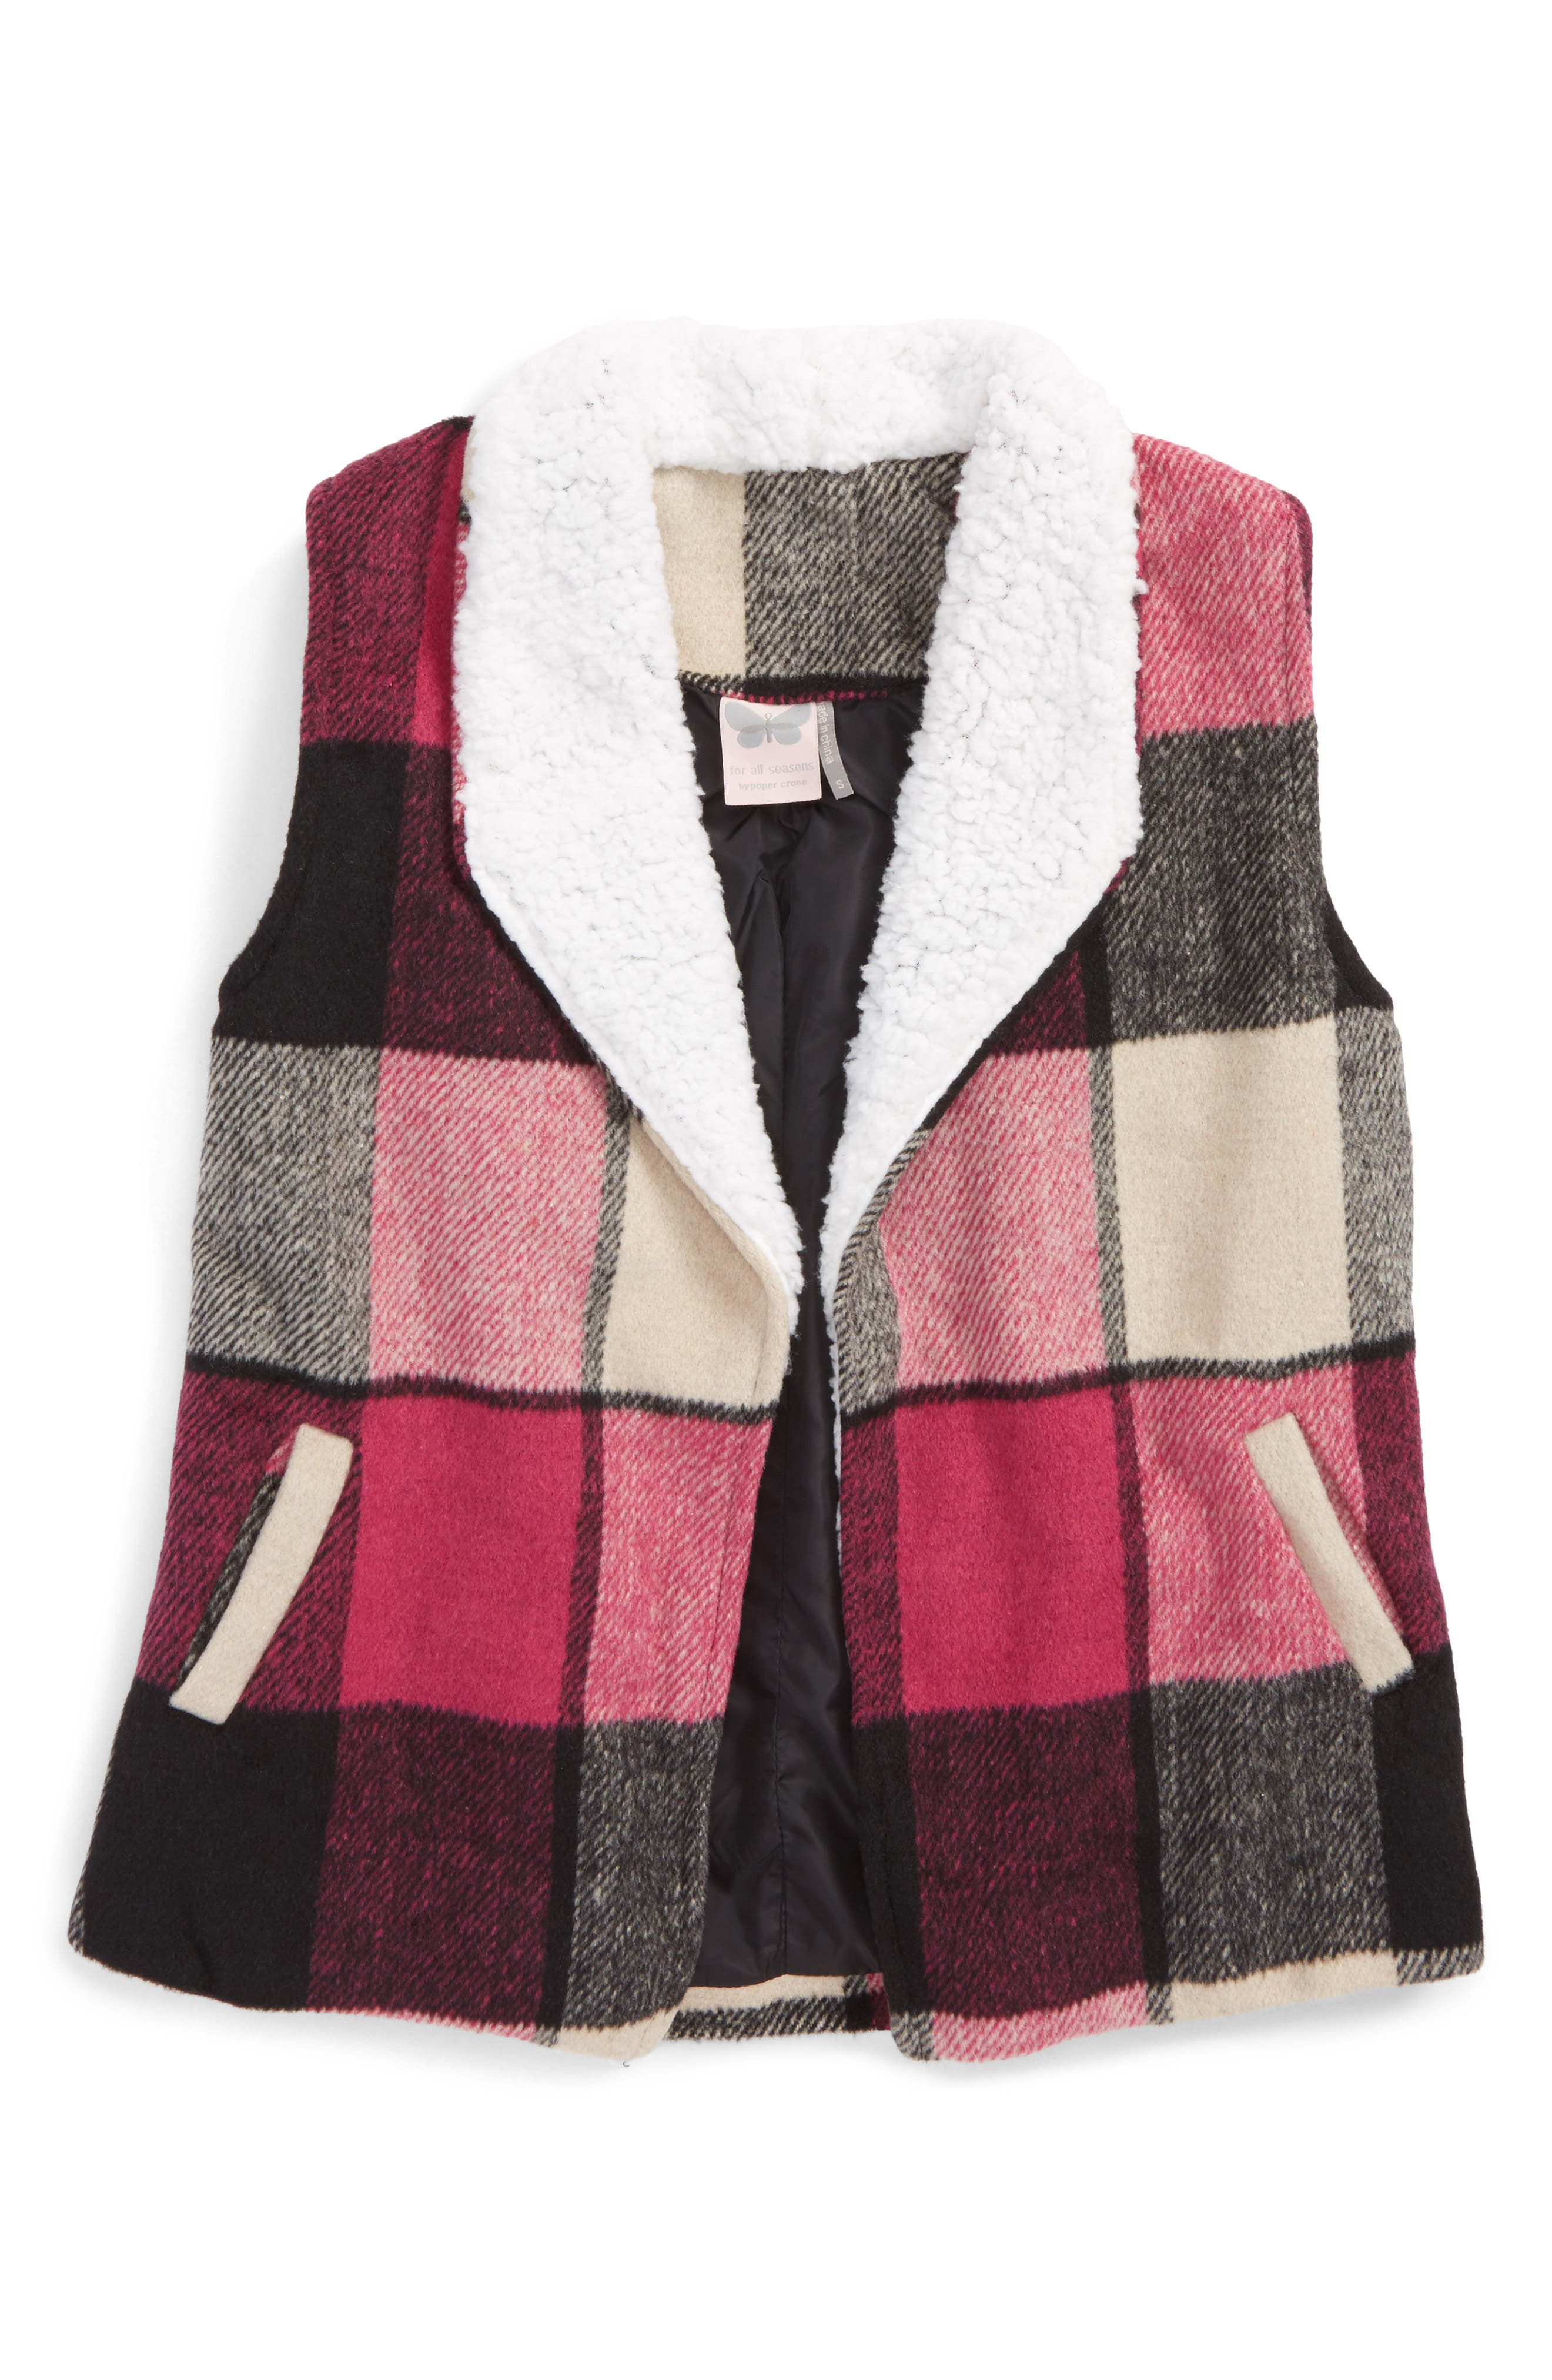 Main Image - For All Seasons Check Vest